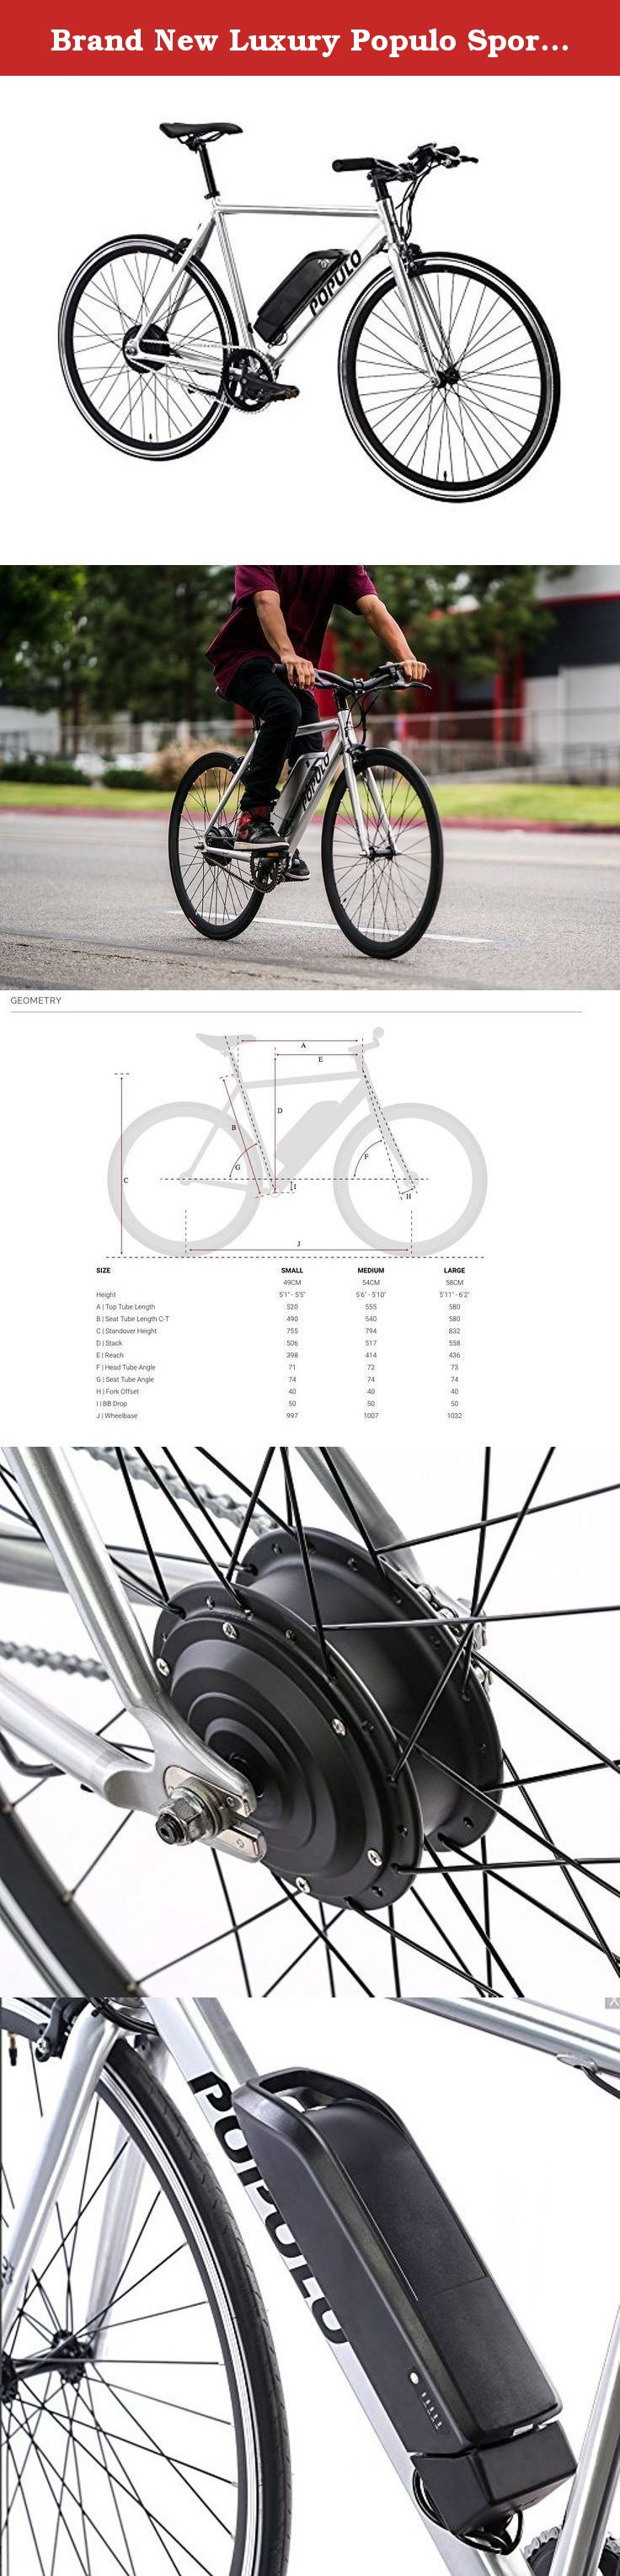 Brand New Luxury Populo Sport Electric Bicycle Polished M 54cm Populo Sport Electric Bicycle Bolt To Work Or Play Electric Bicycle Bicycle Electric Bike